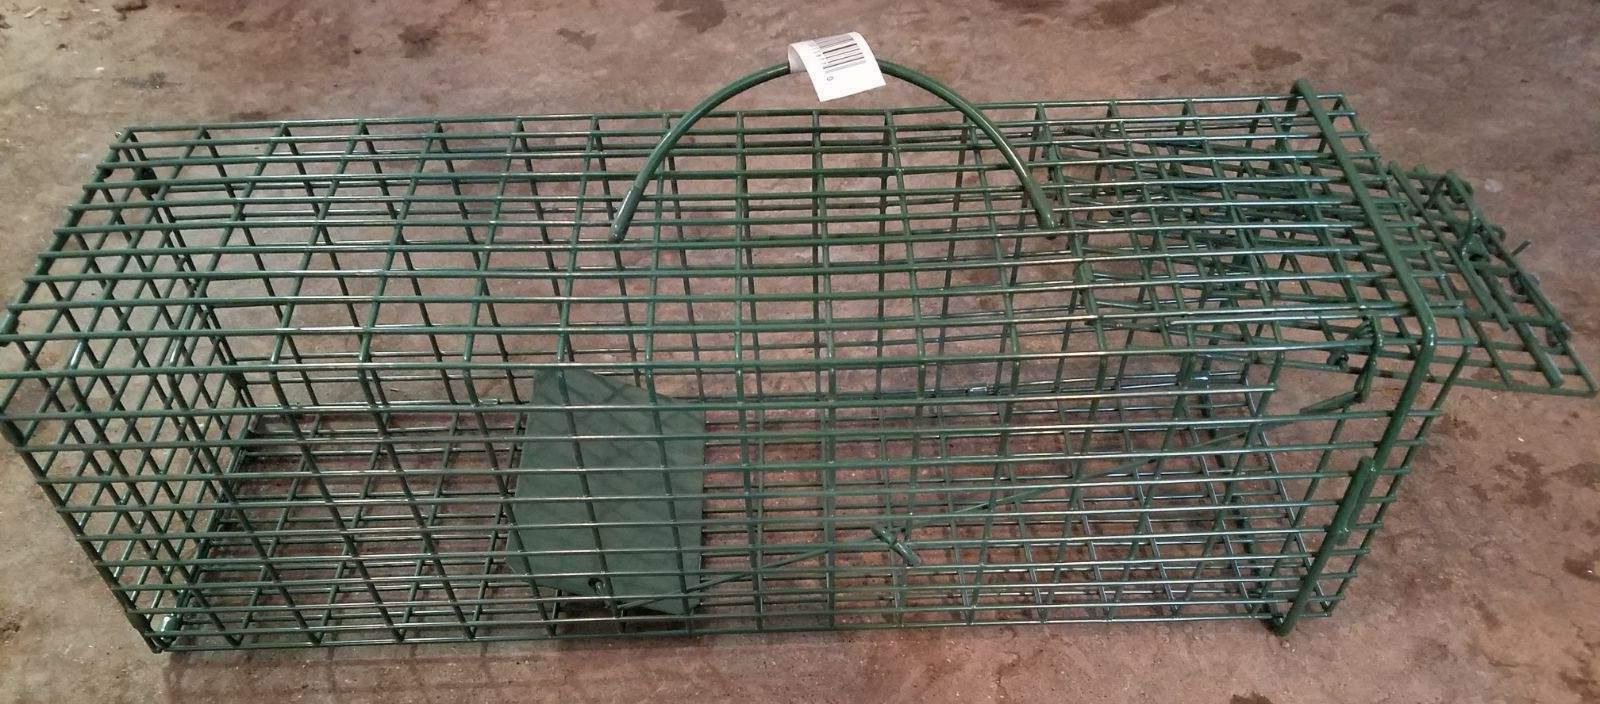 duke squirrel live cage trap chipmunk rat